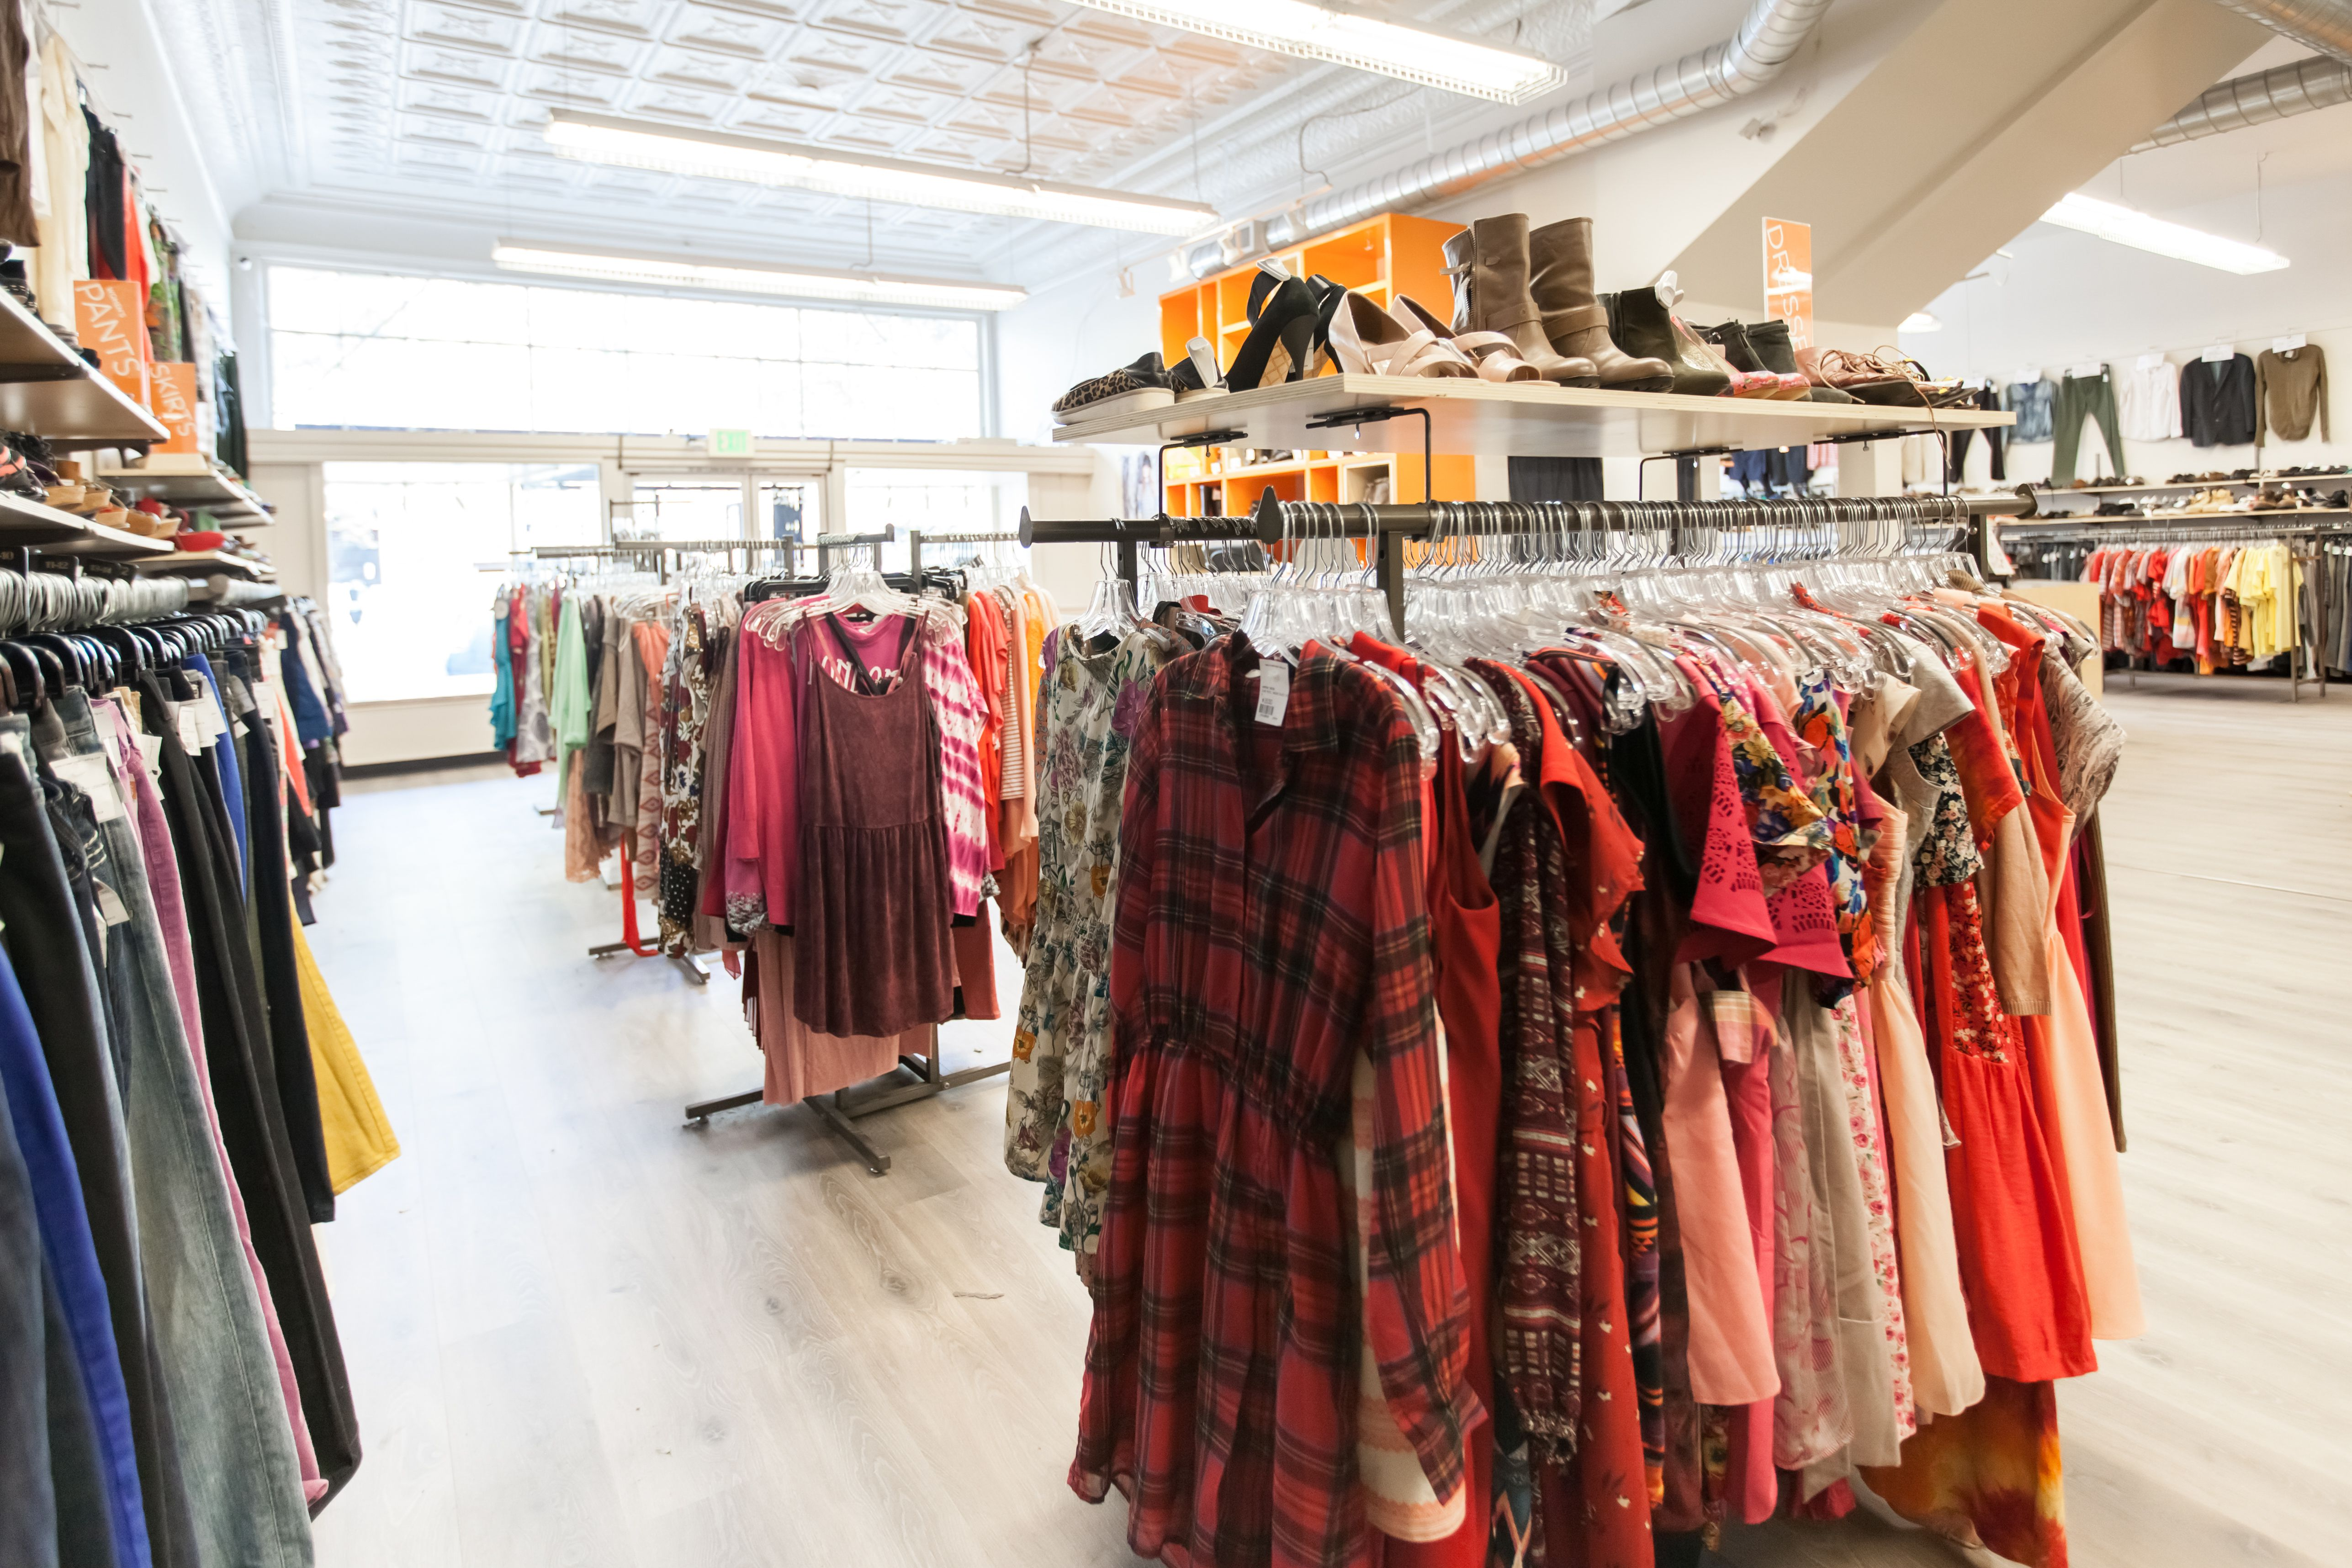 Working at The Closet Trading Company | Glassdoor